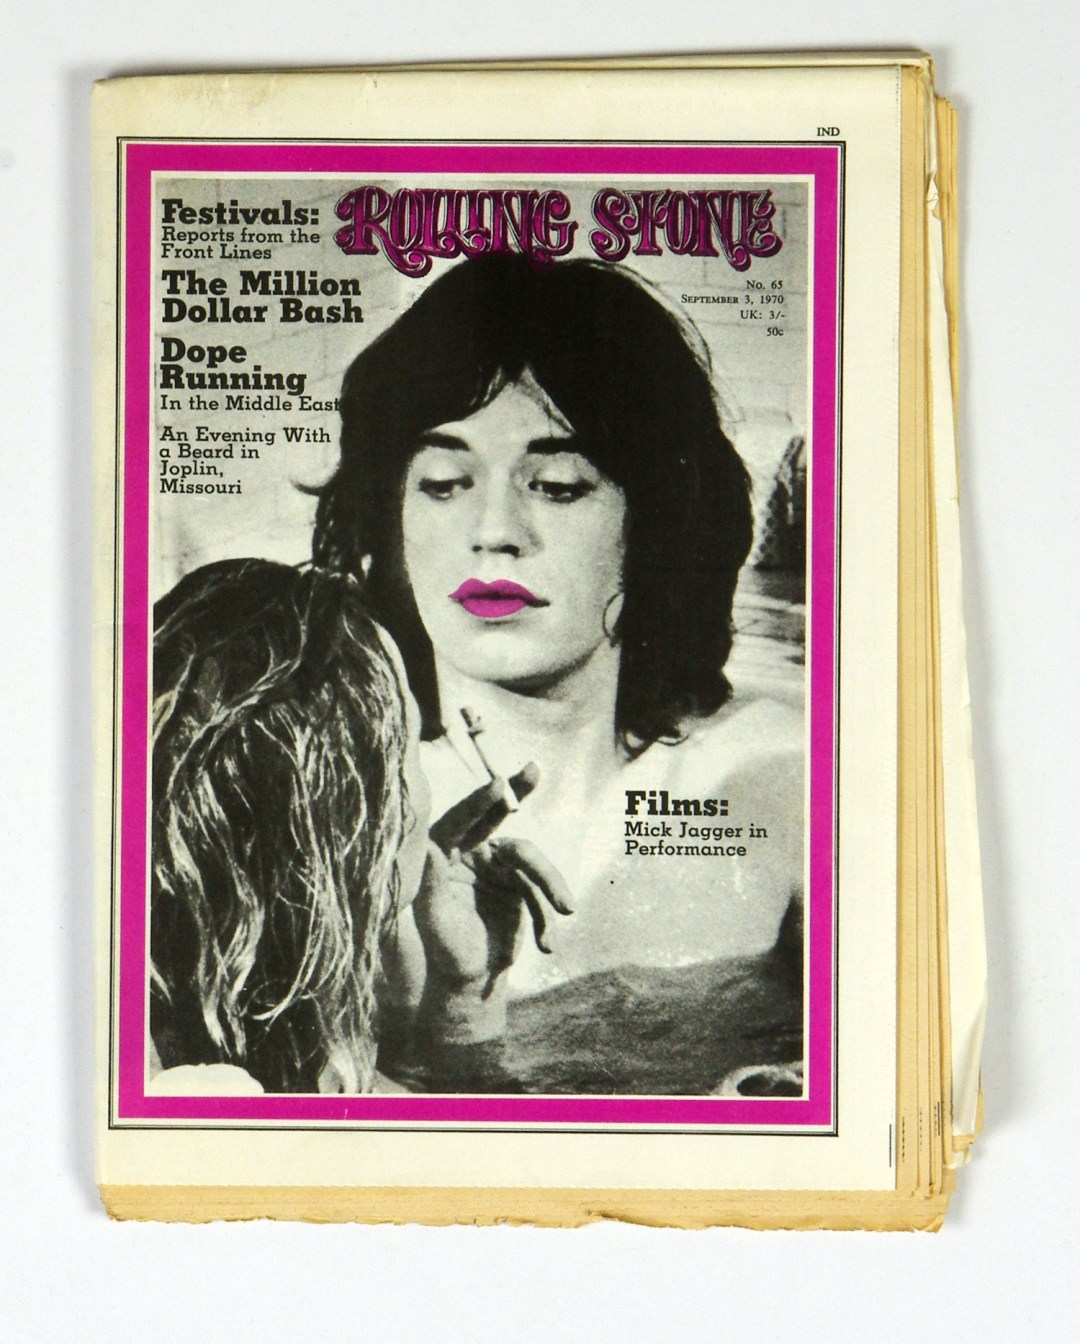 Rolling Stone Magazine 1970 Sep 3 No. 65 Mick Jagger